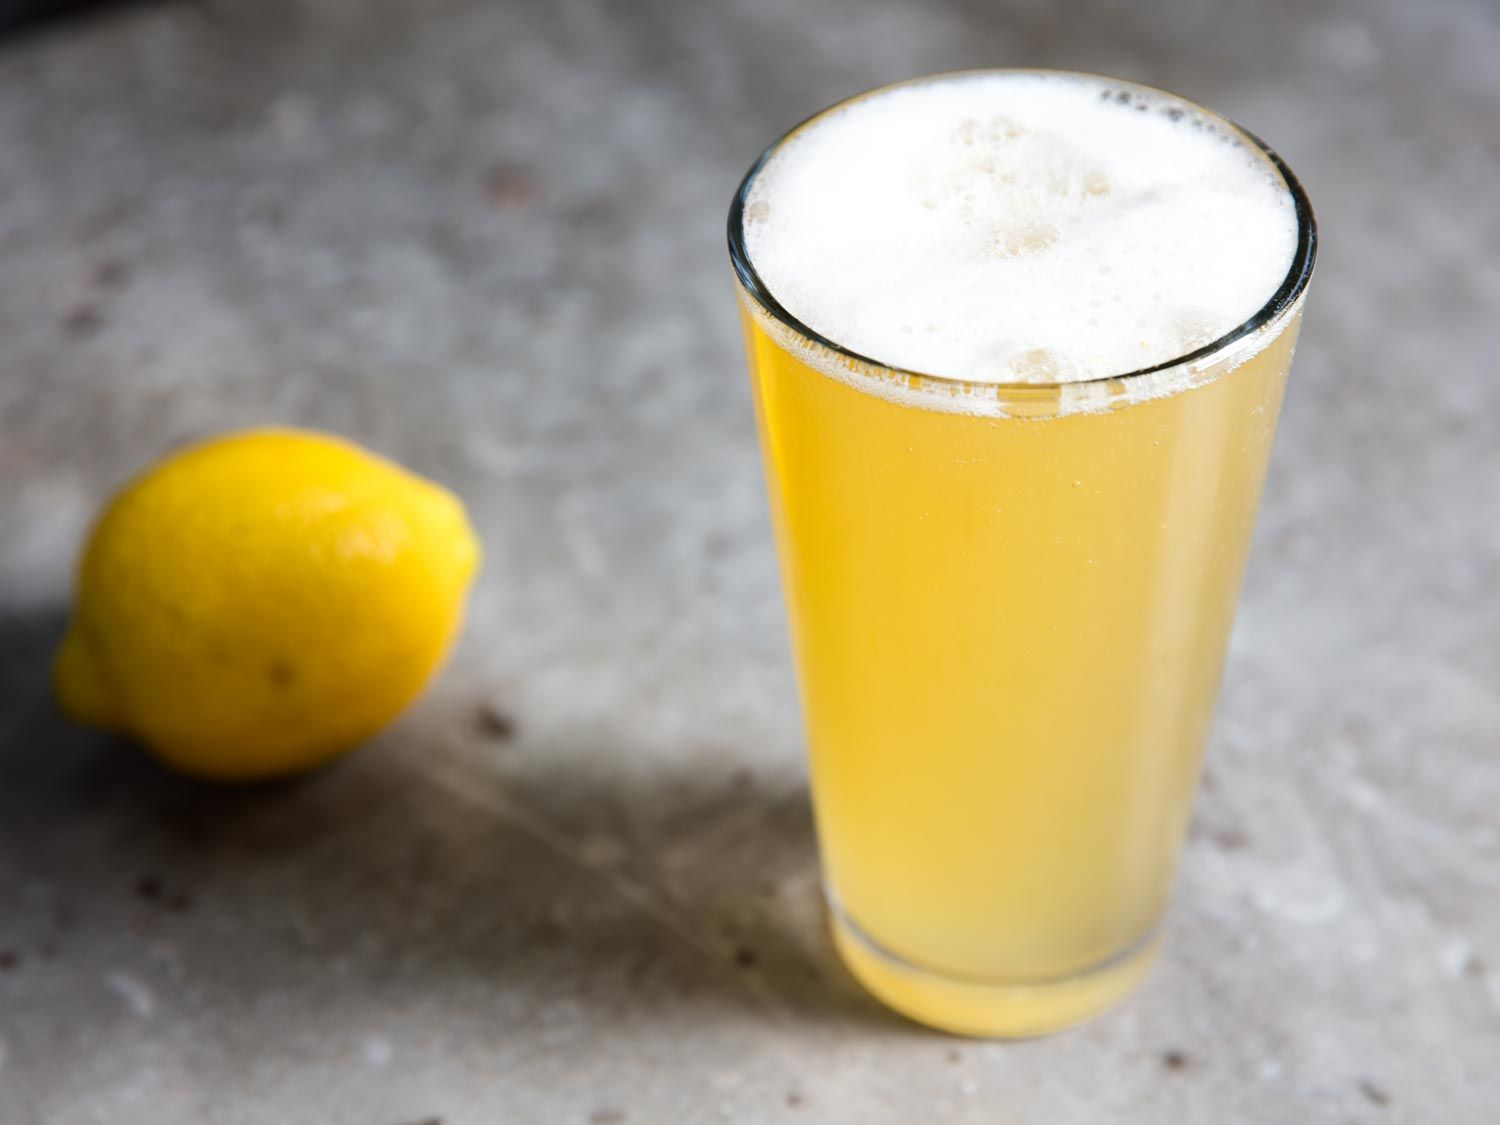 63f59c4078a0 A radler is a classic mix of beer and carbonated lemonade (also known as a  shandy)  order one at some bars in Germany and you ll get a blend of beer  and ...